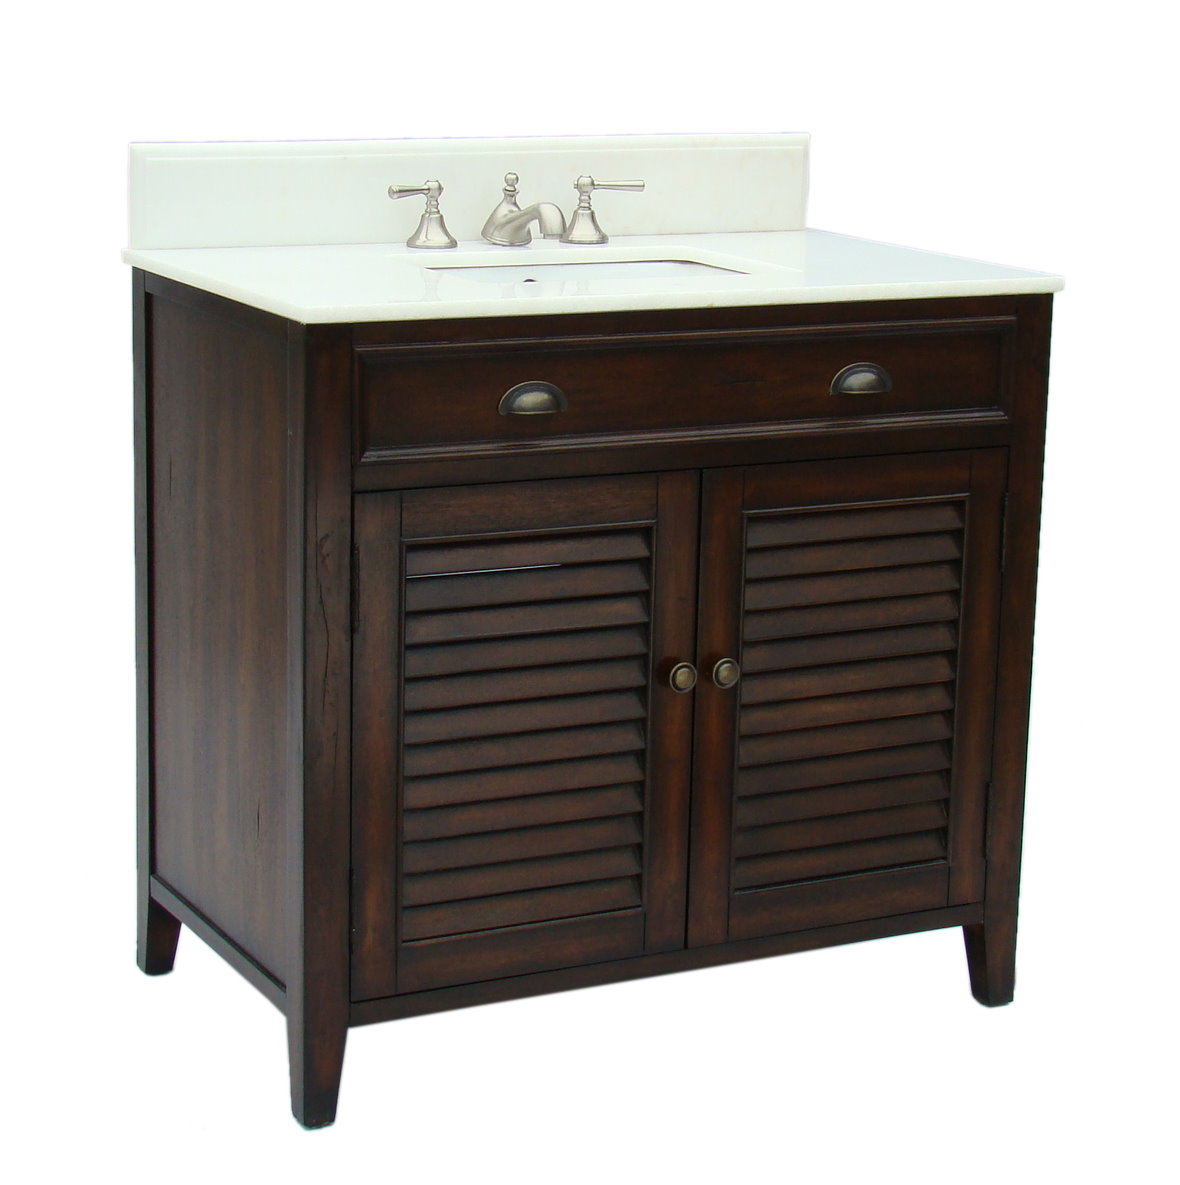 36 inch Adelina Cottage Brown Finish Bathroom Vanity